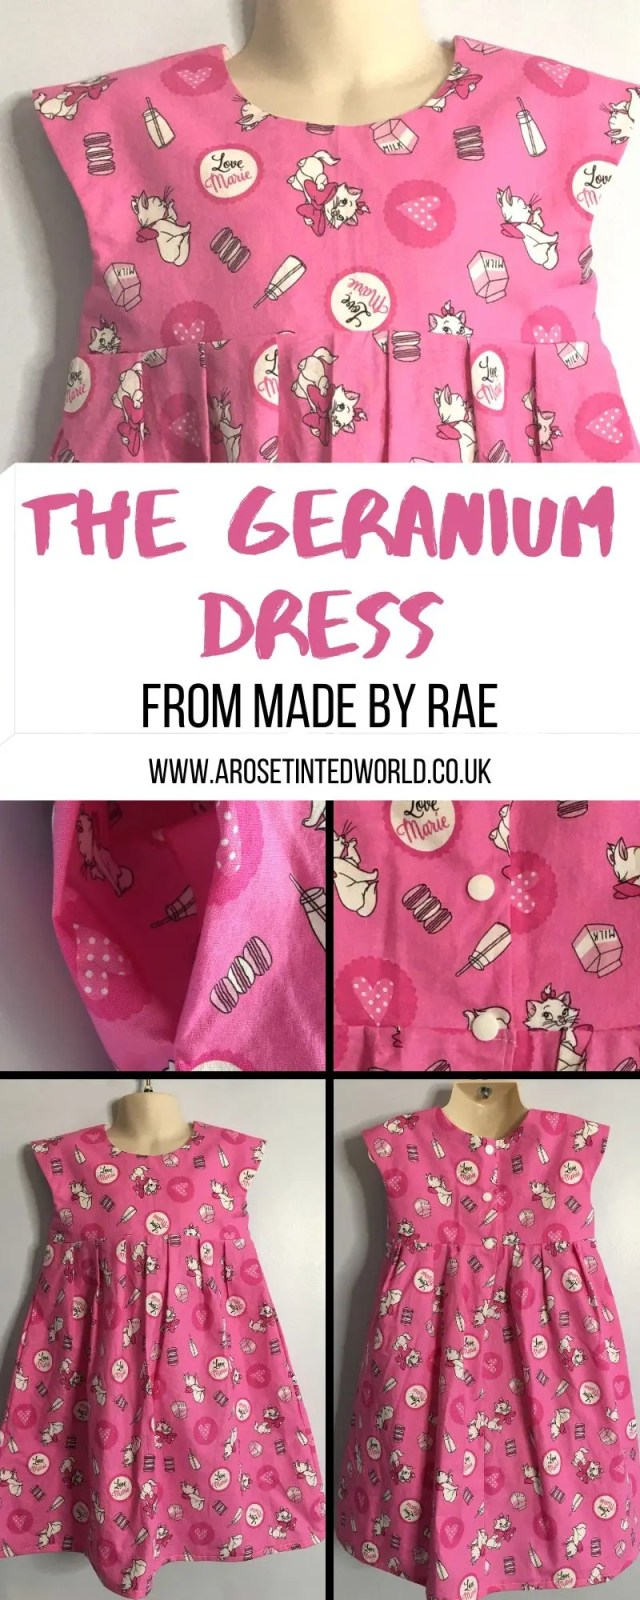 The Geranium Dress from Made By Rae is a brilliant adaptable and customisable child's dress making pattern. See how mine turned out and find out why this pattern is so versatile #sewing #dressmaking #childrensdressmaking #dressmaker #sewingprojects #sewingtutorials #sewingpatterns #slowfashion #sewingclothes #beginnerssewingprojects #easysewing #geraniummadebyrae #geraniumdress